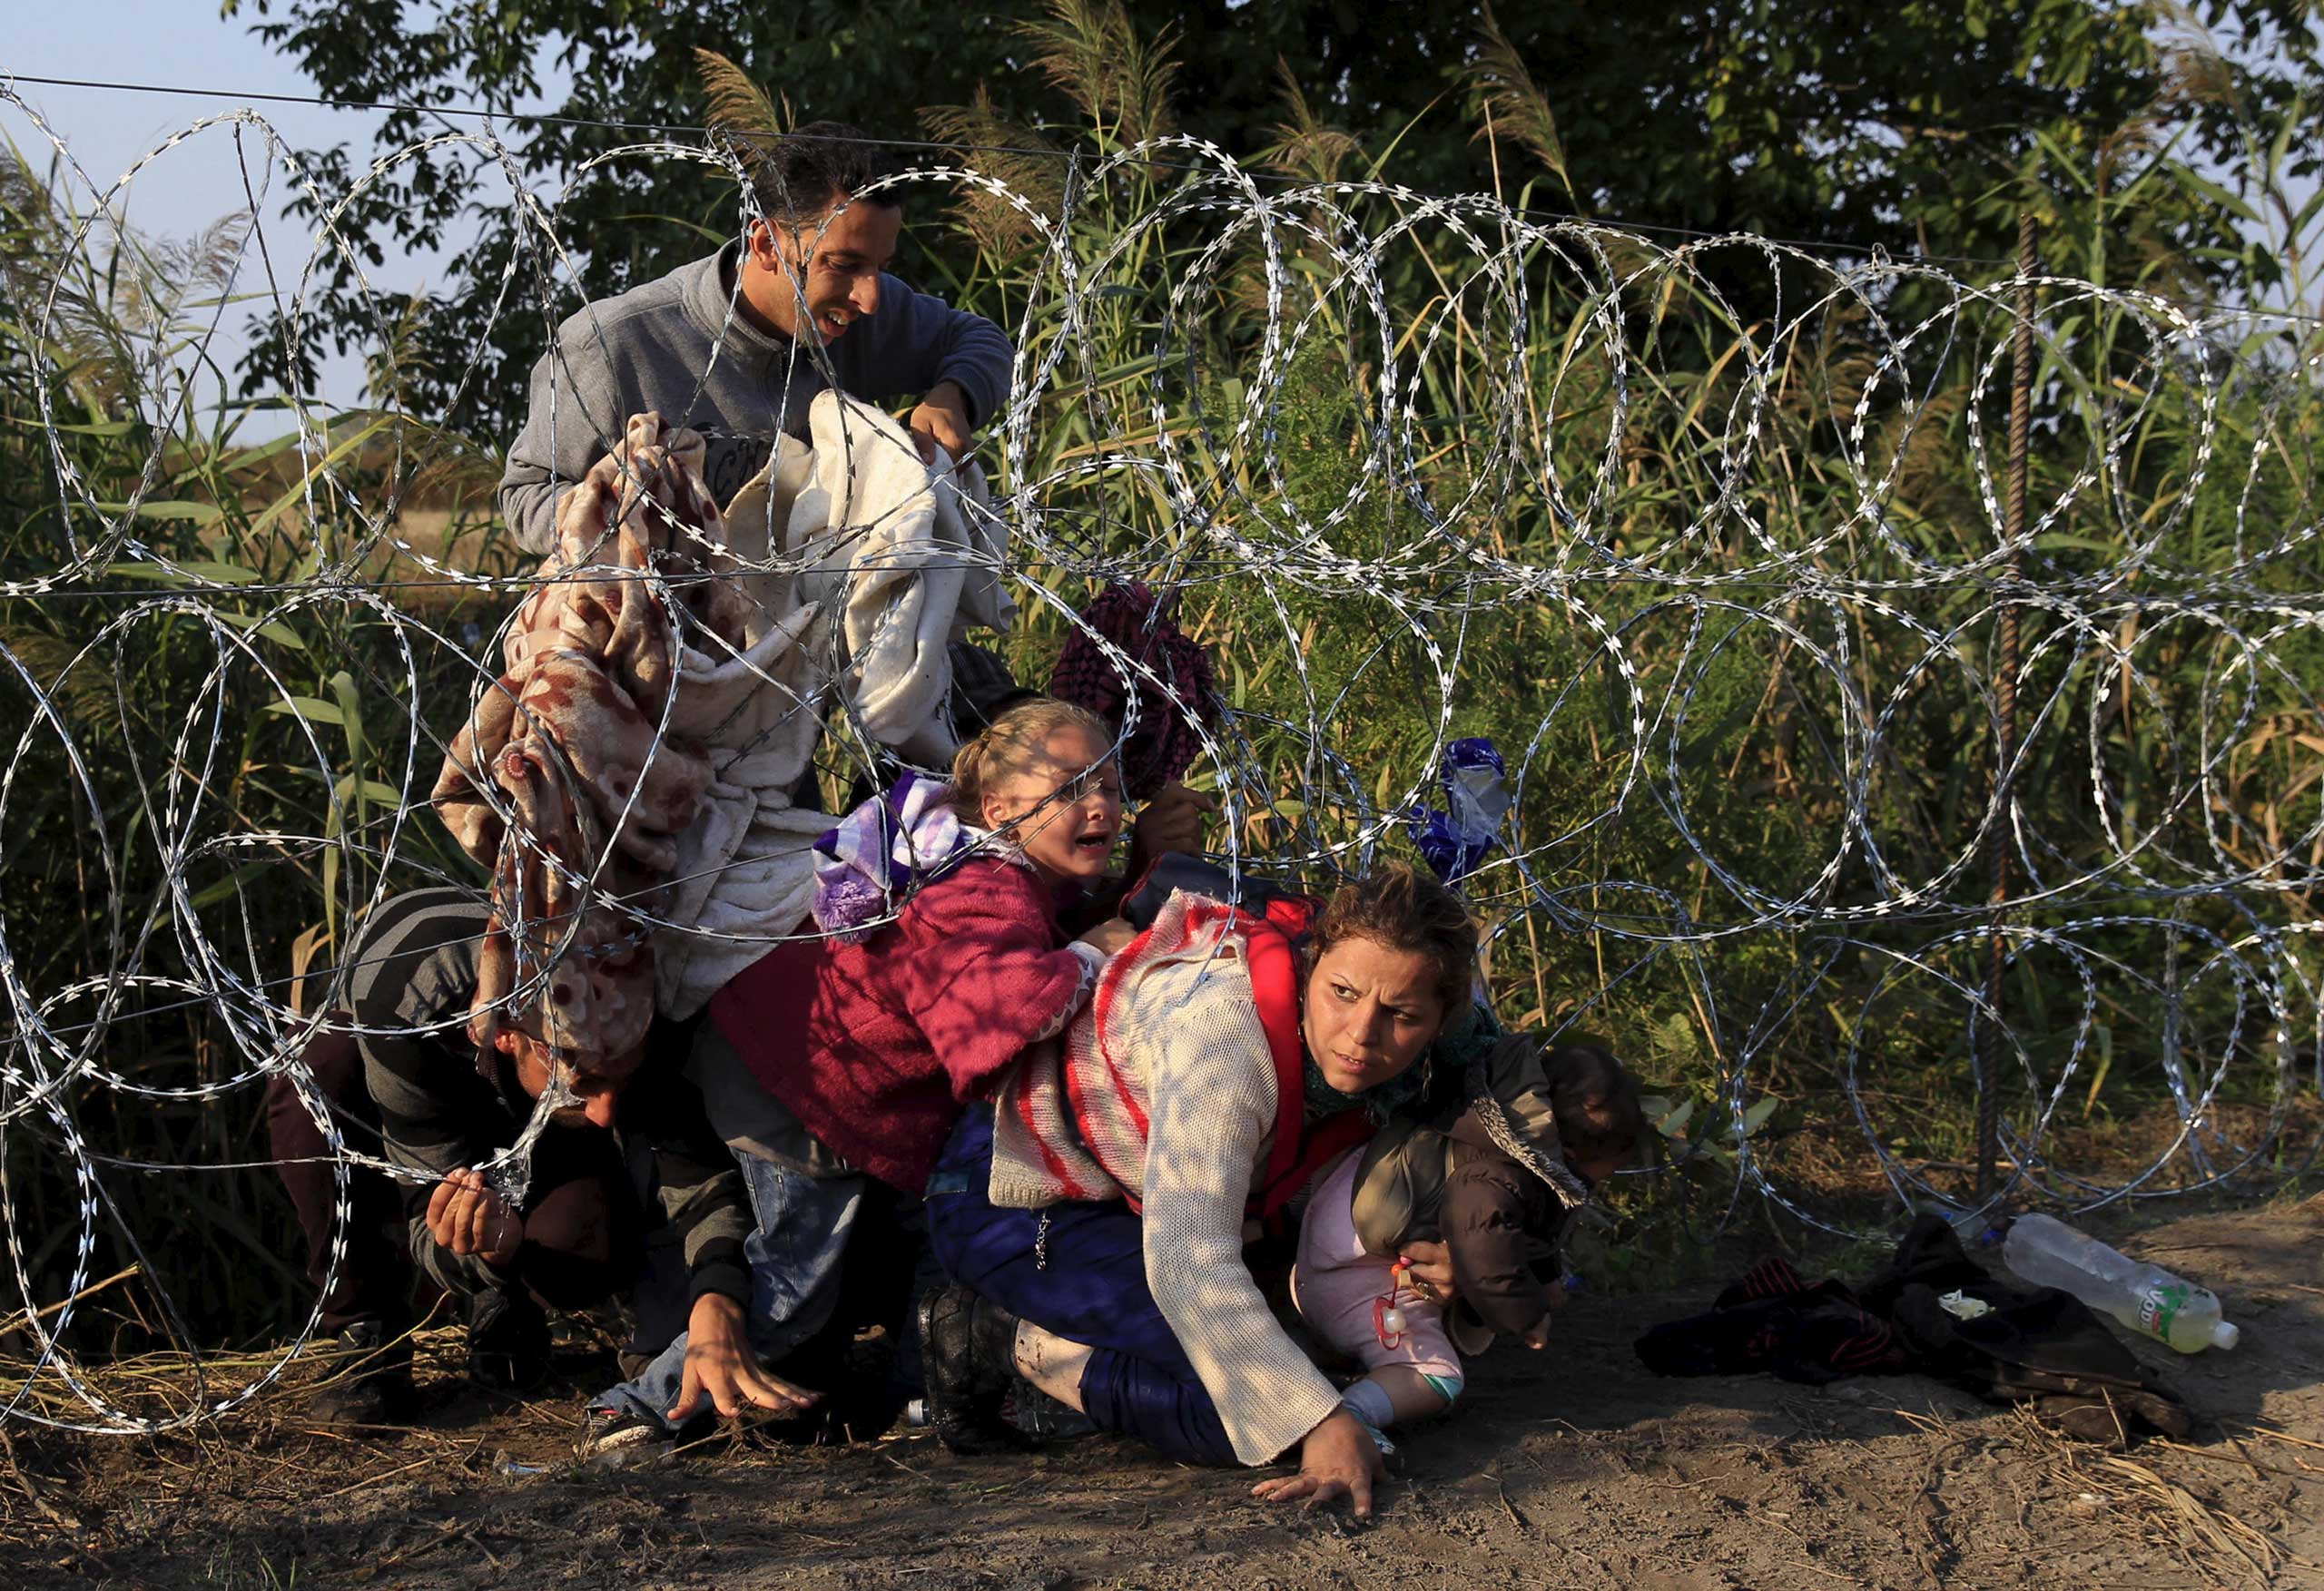 Syrian migrants cross under a fence as they enter Hungary at the border with Serbia, near Roszke, on Aug. 27, 2015.